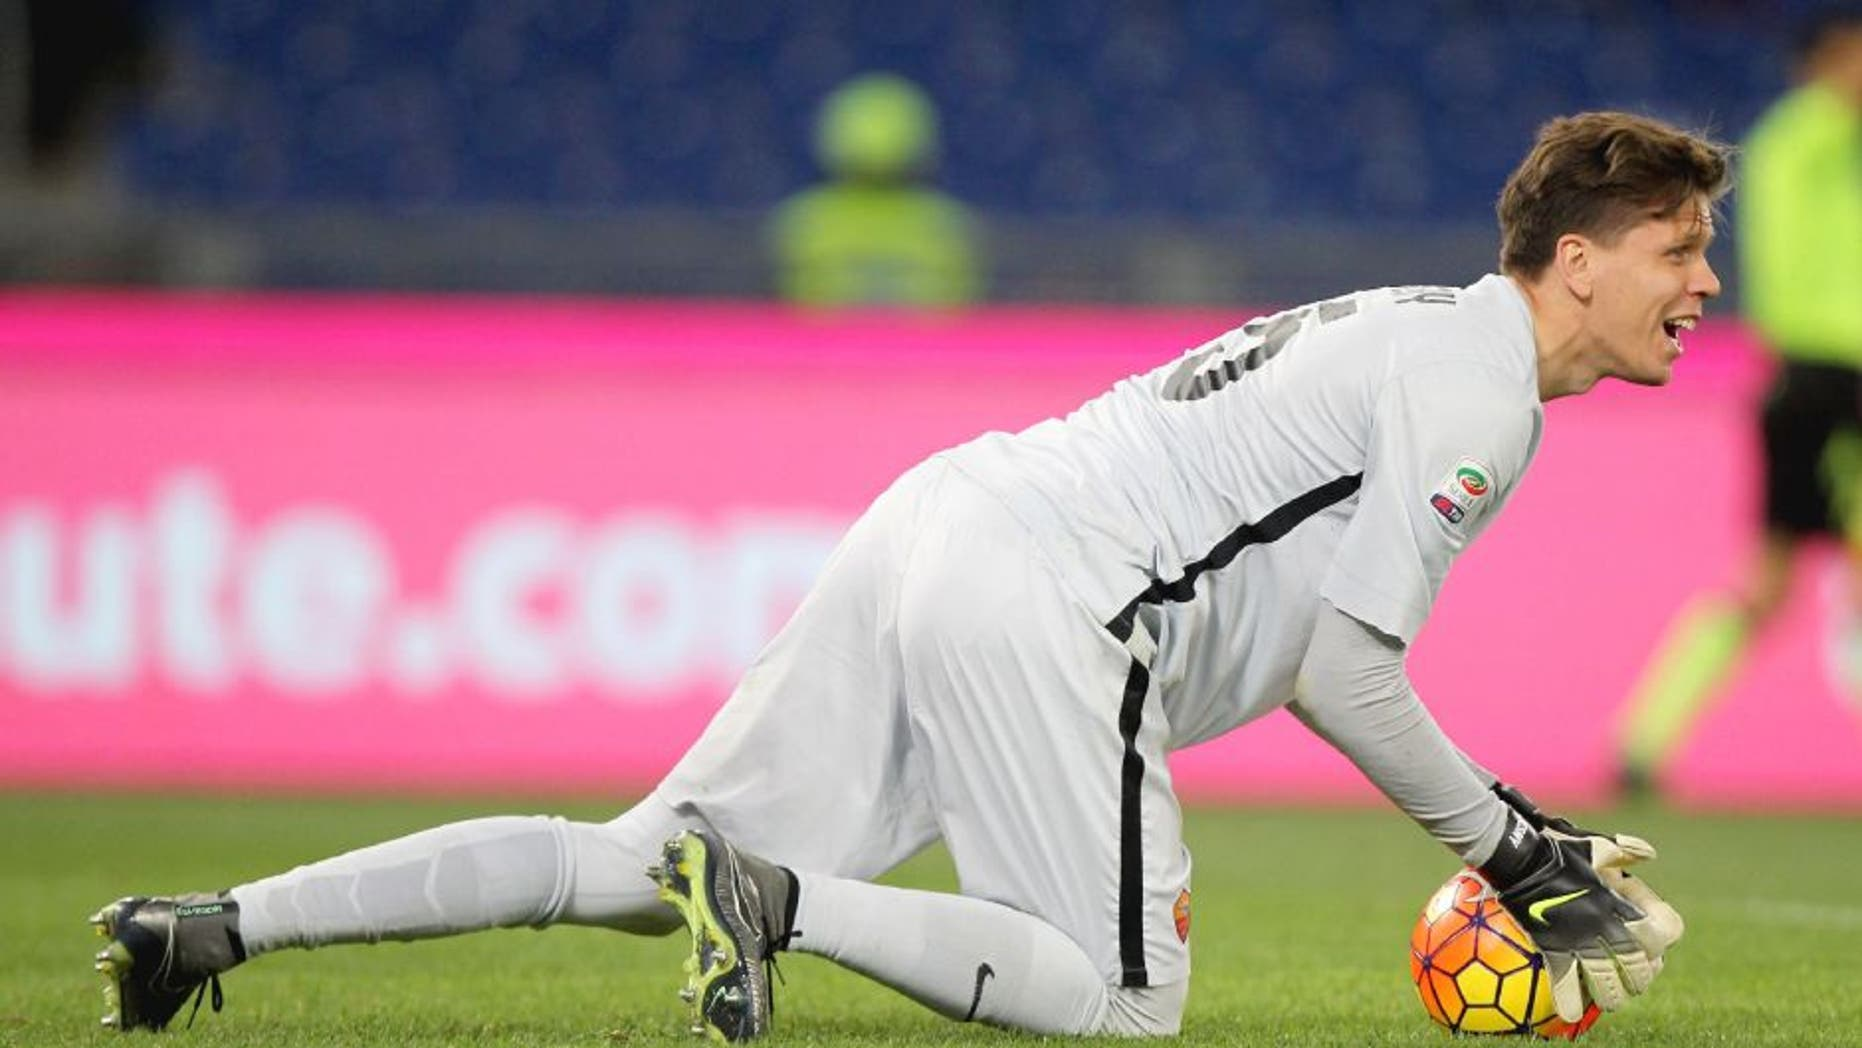 ROME, ITALY - FEBRUARY 07: AS Roma goalkeeper Wojchiech Szczesny in action during the Serie A match between AS Roma and UC Sampdoria at Stadio Olimpico on February 7, 2016 in Rome, Italy. (Photo by Paolo Bruno/Getty Images)